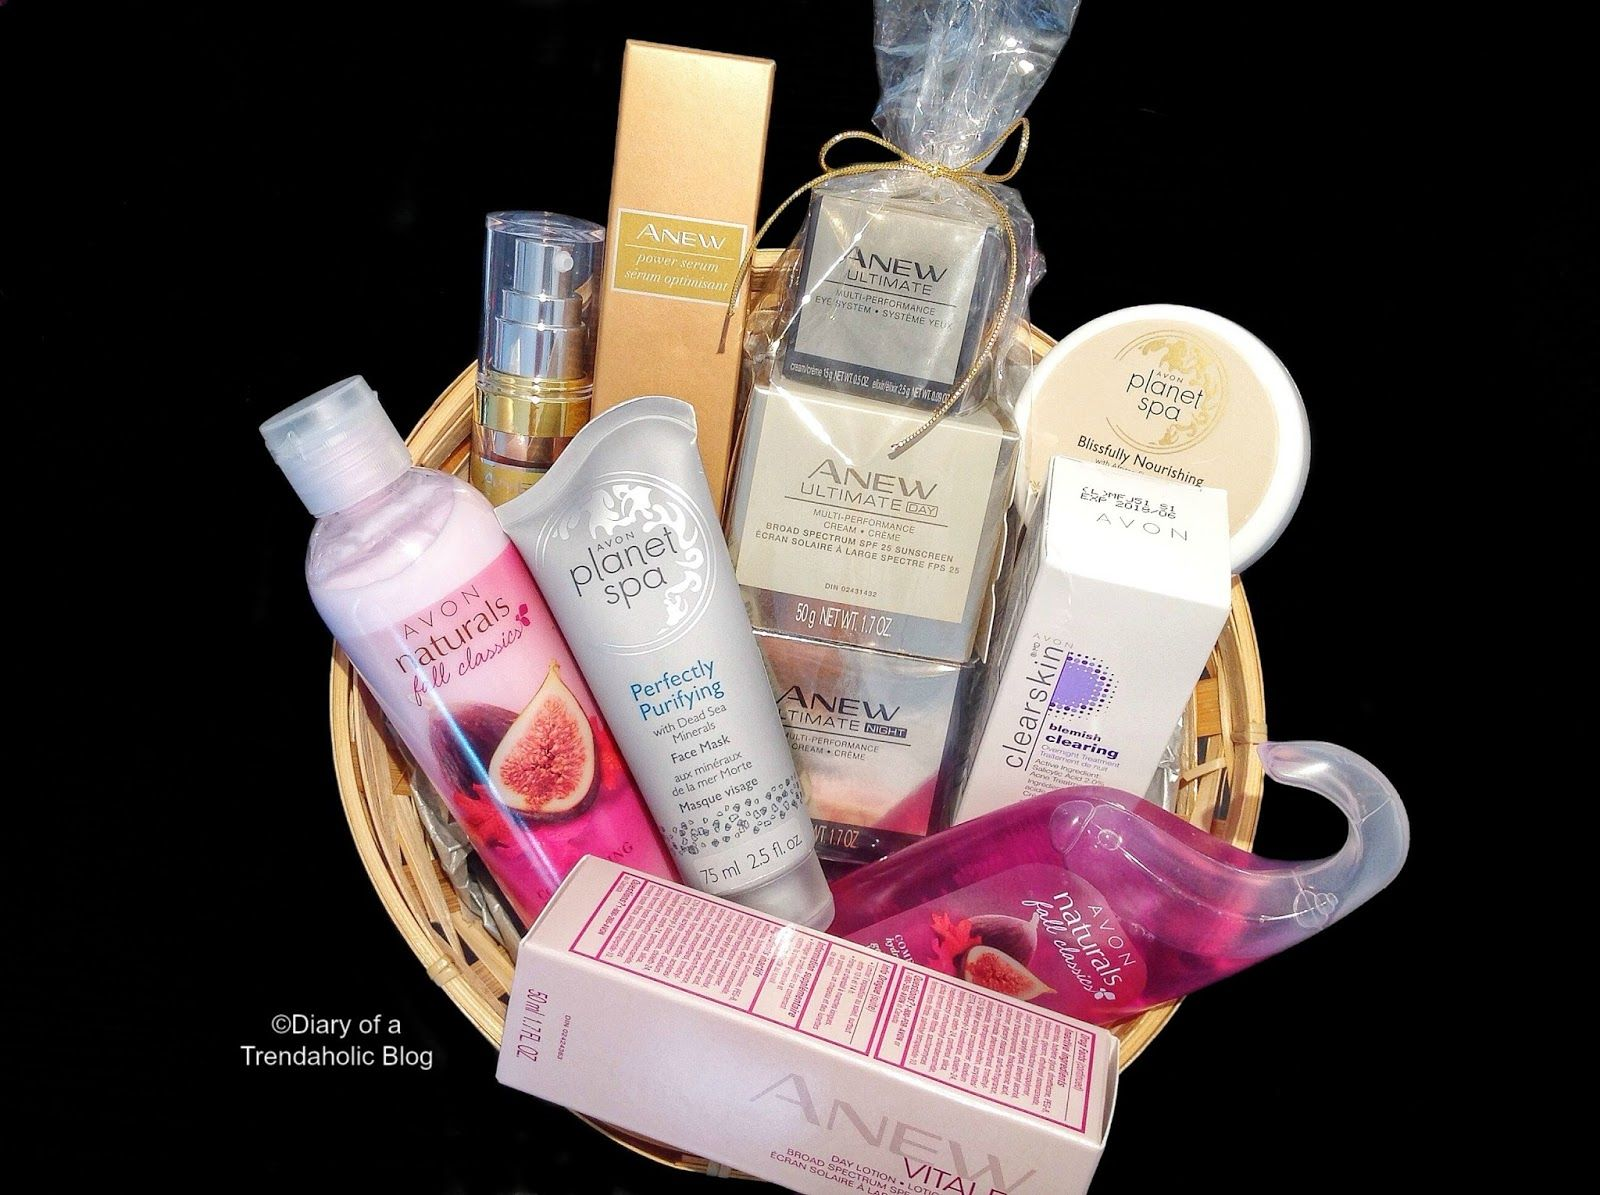 Spa gift baskets with avon fabulous gifts ideas and products spa gift baskets with avon fabulous gifts ideas and products negle Image collections